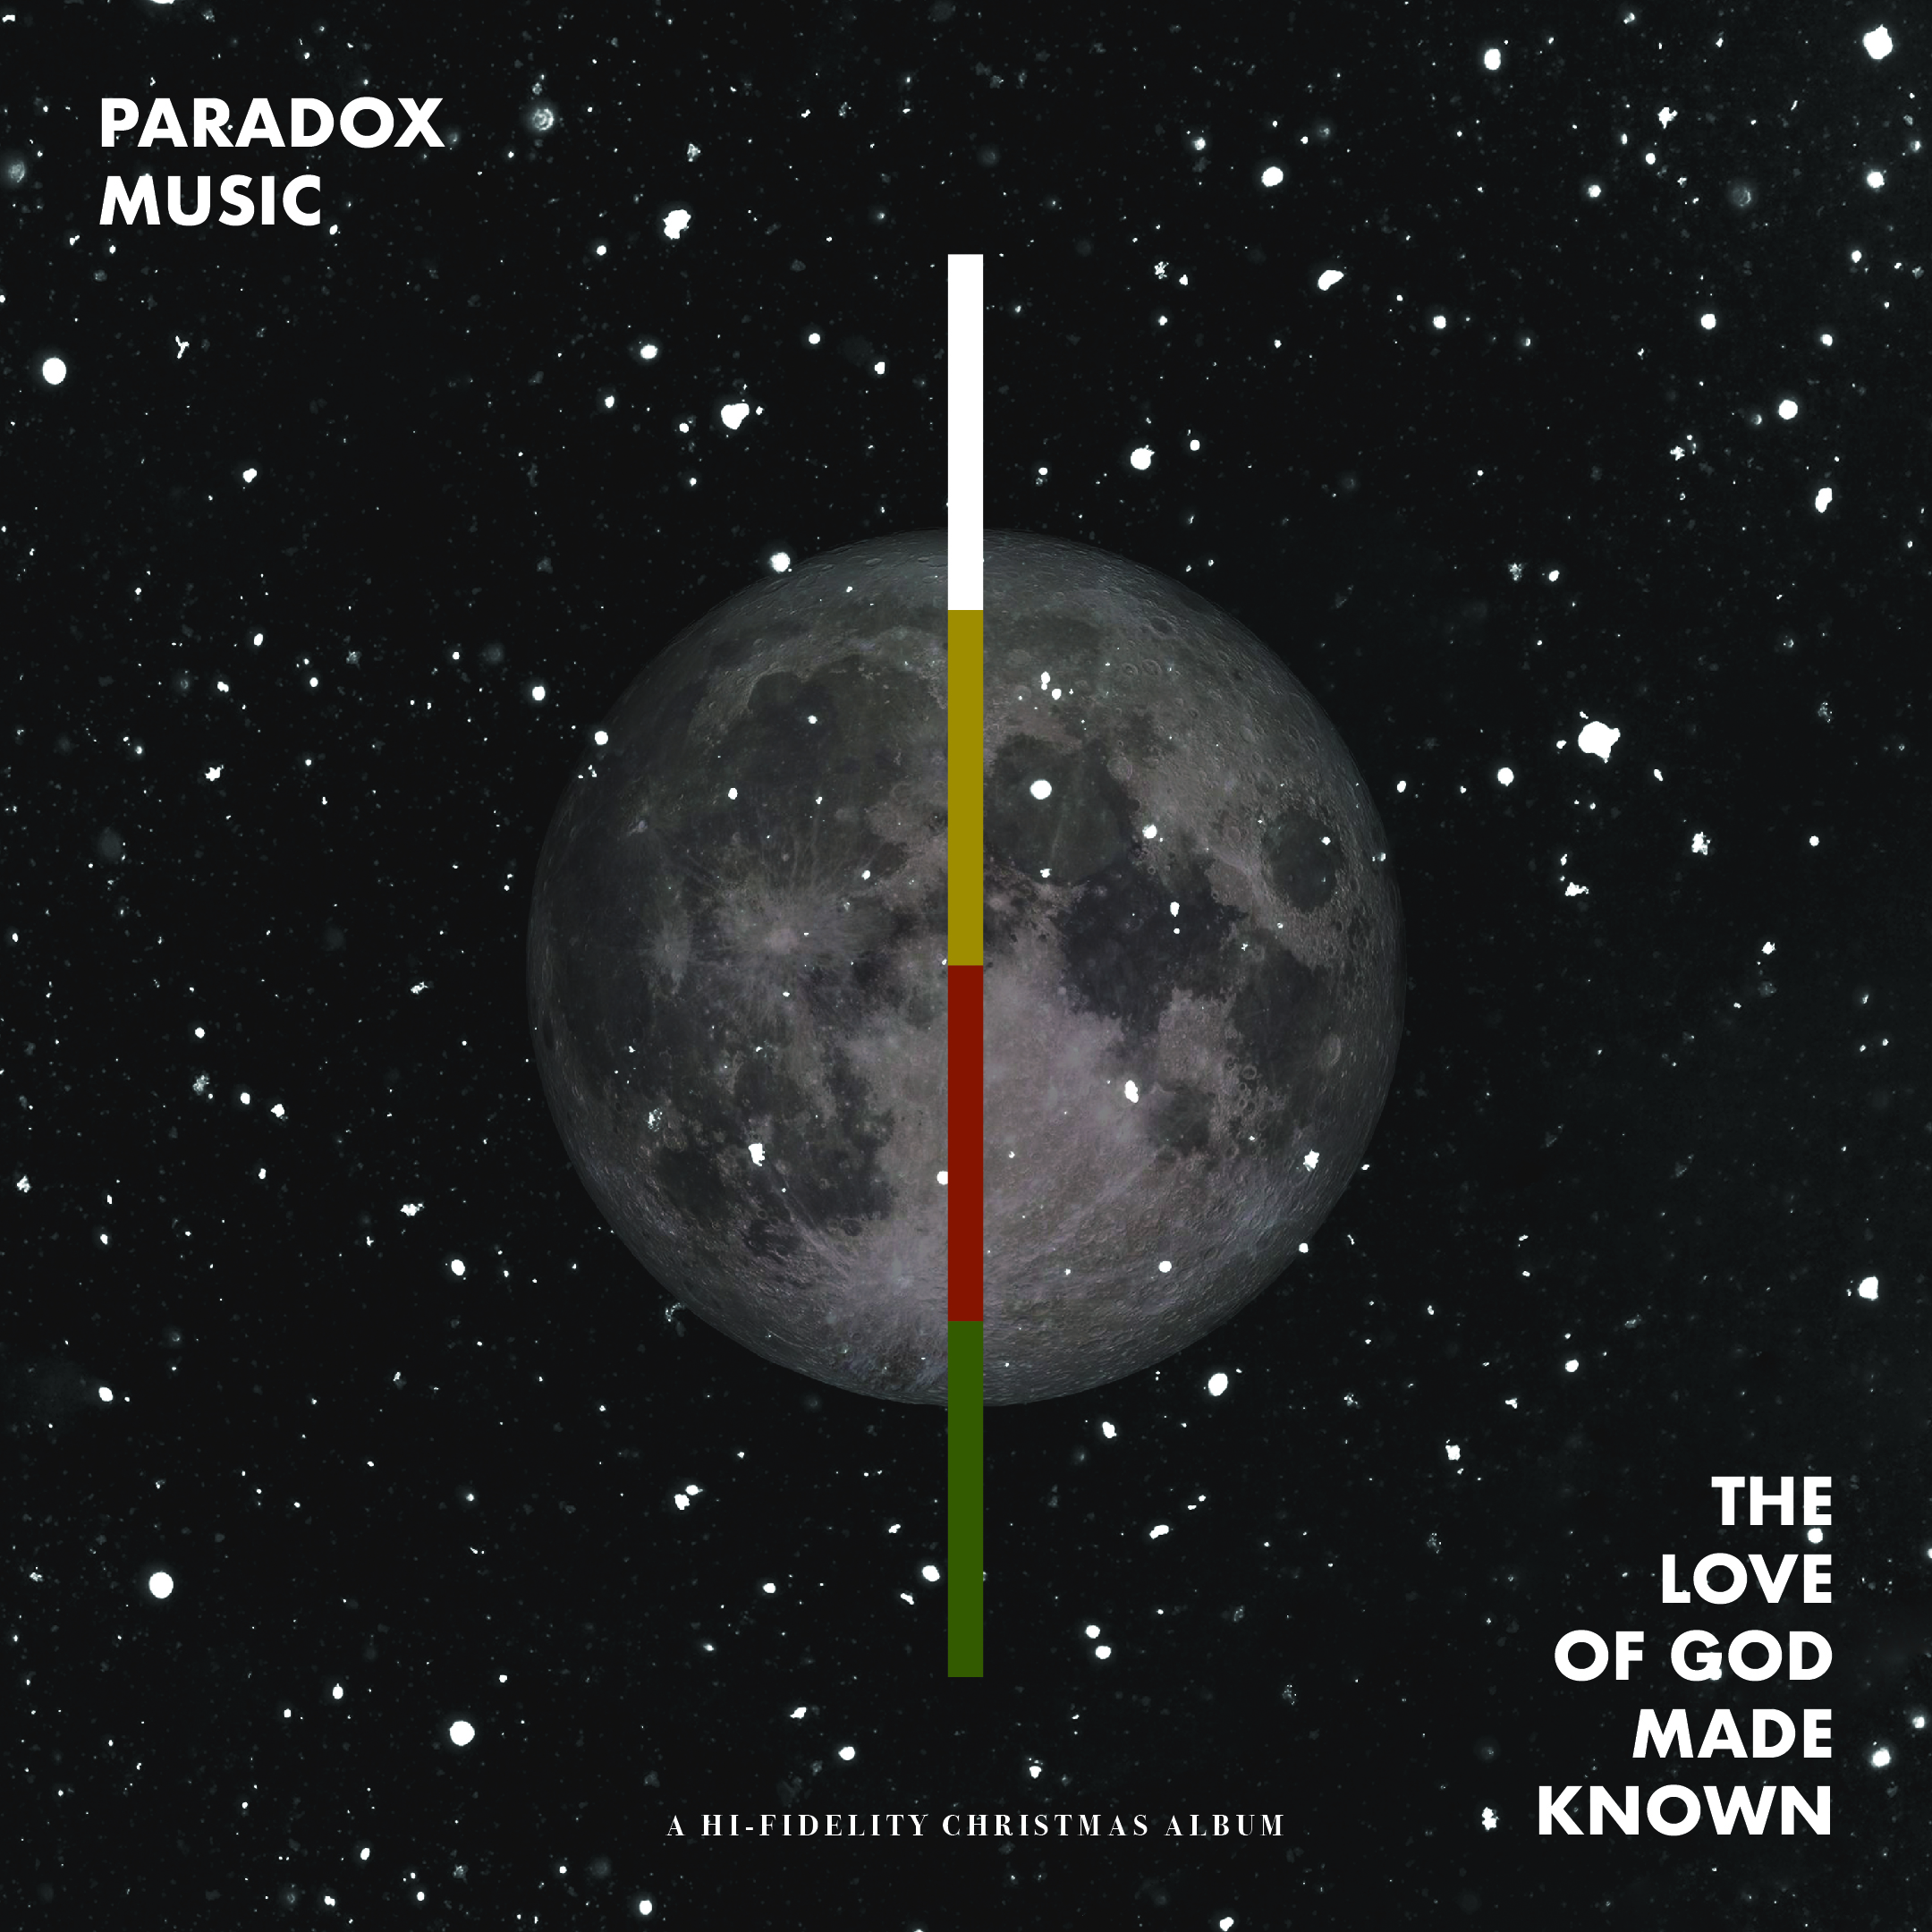 The Love of God Made Known by Paradox Music   A Hi-Fidelity Christmas Album.